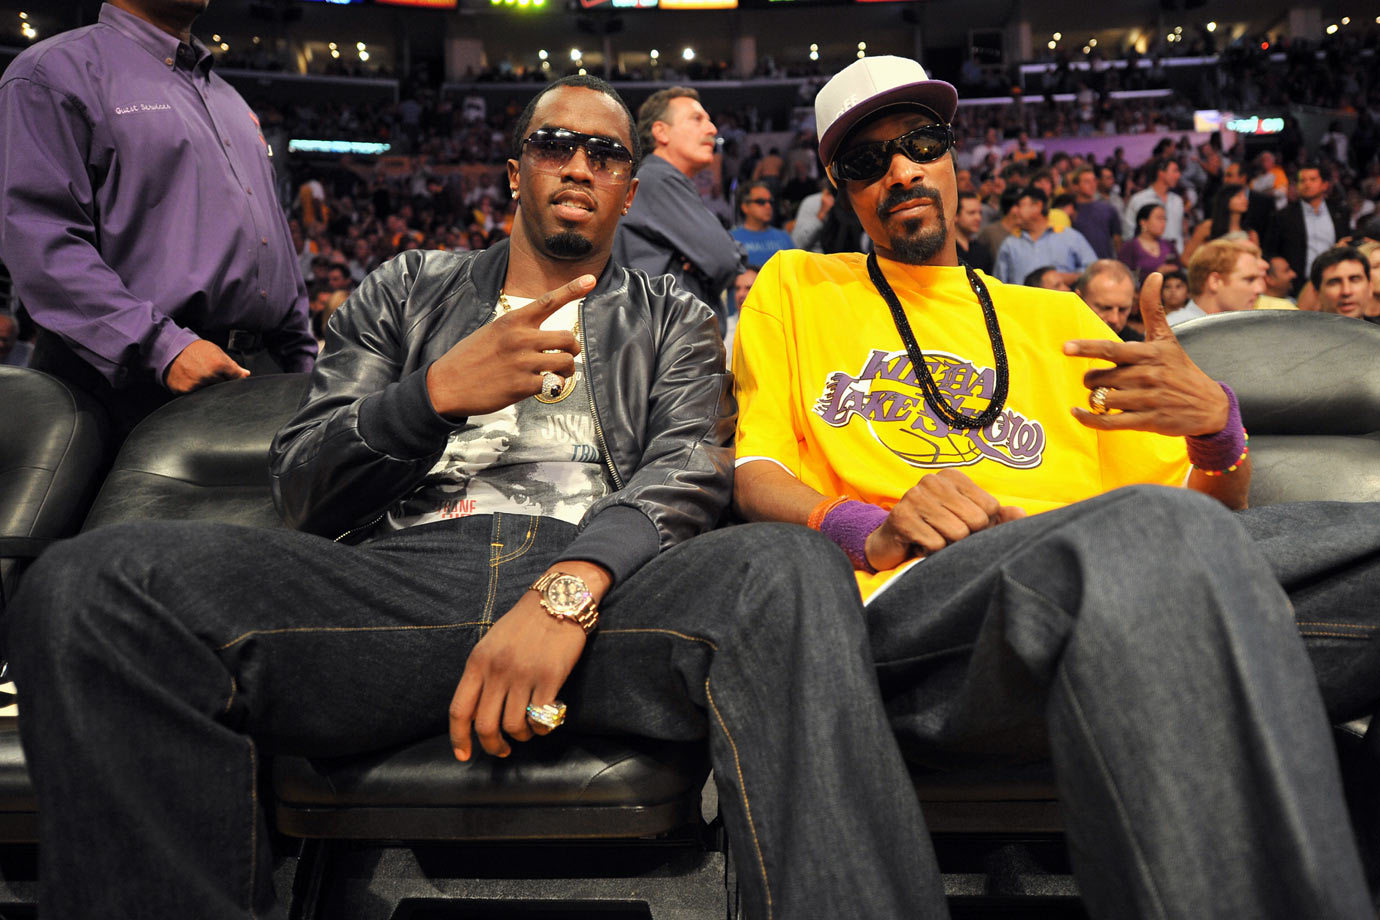 Sean Combs and Snoop Dogg attend Game Six of the NBA Finals between the Boston Celtics and Los Angeles Lakers on June 15, 2010 at Staples Center in Los Angeles.